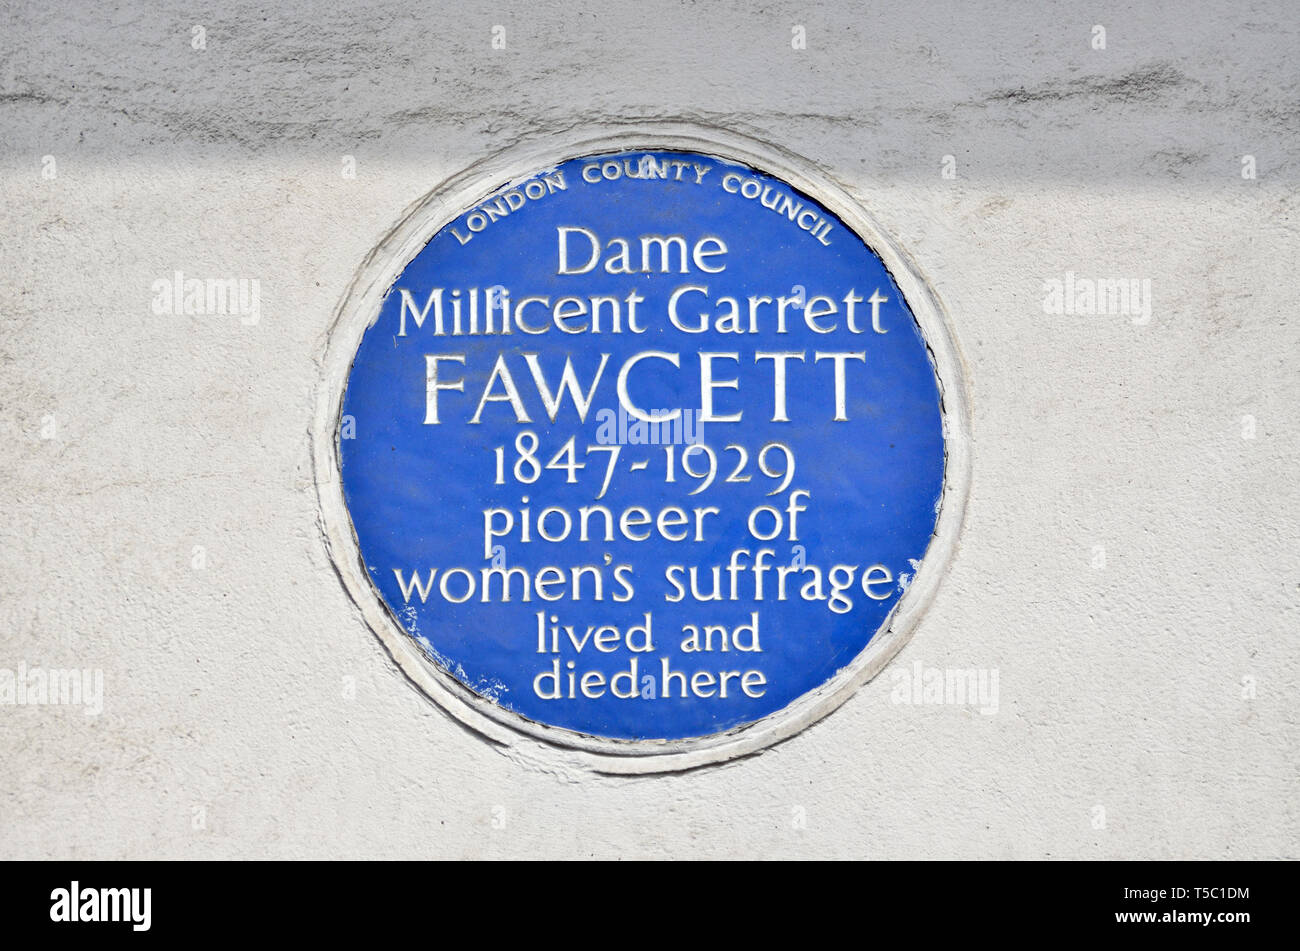 London, England, UK. Commemorative Blue Plaque: Dame Millicent Garrett FAWCETT (1847-1929) pioneer of women's suffrage, lived and died here. 2 Gower S - Stock Image